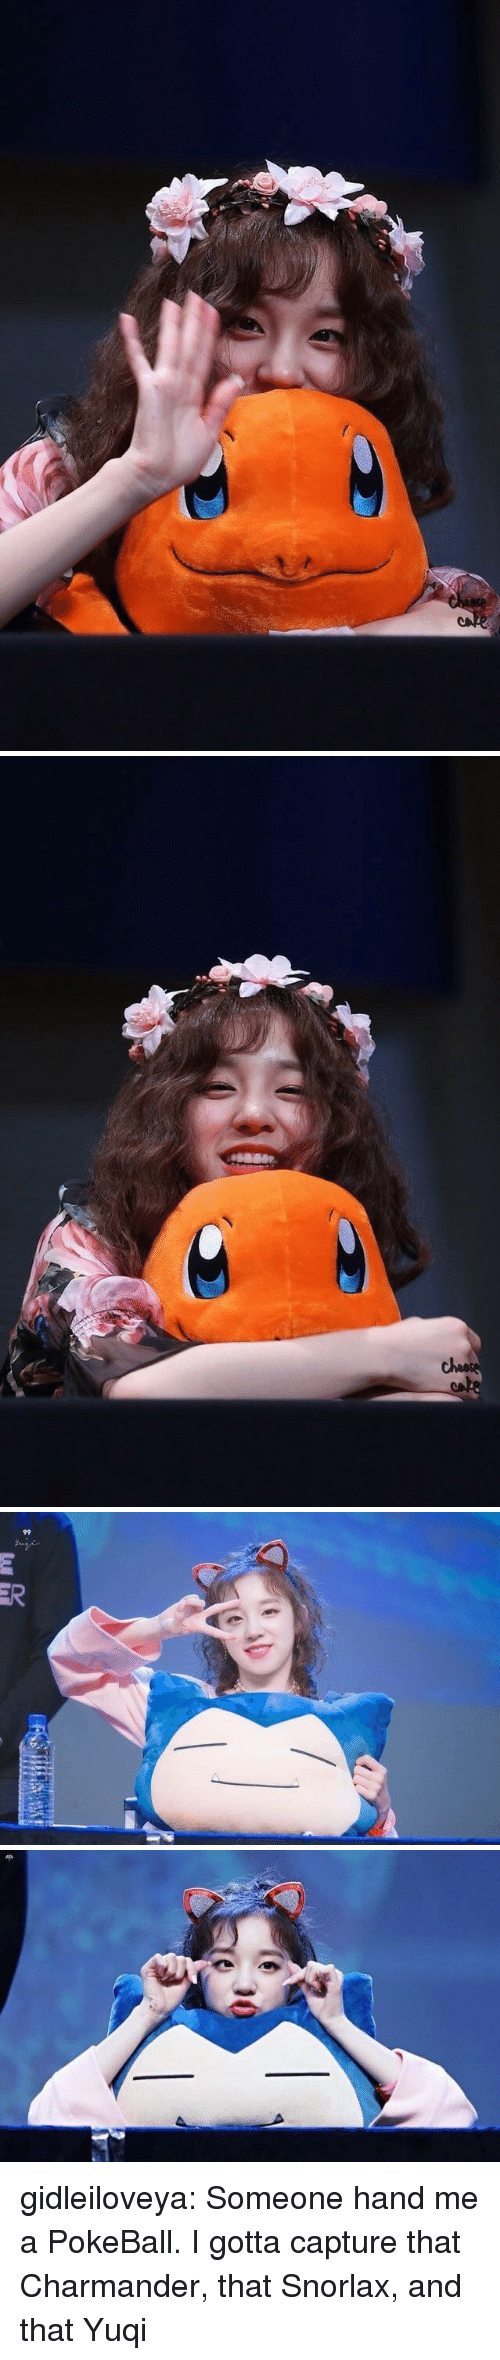 charmander: ER gidleiloveya:  Someone hand me a PokeBall. I gotta capture that Charmander, that Snorlax, and that Yuqi